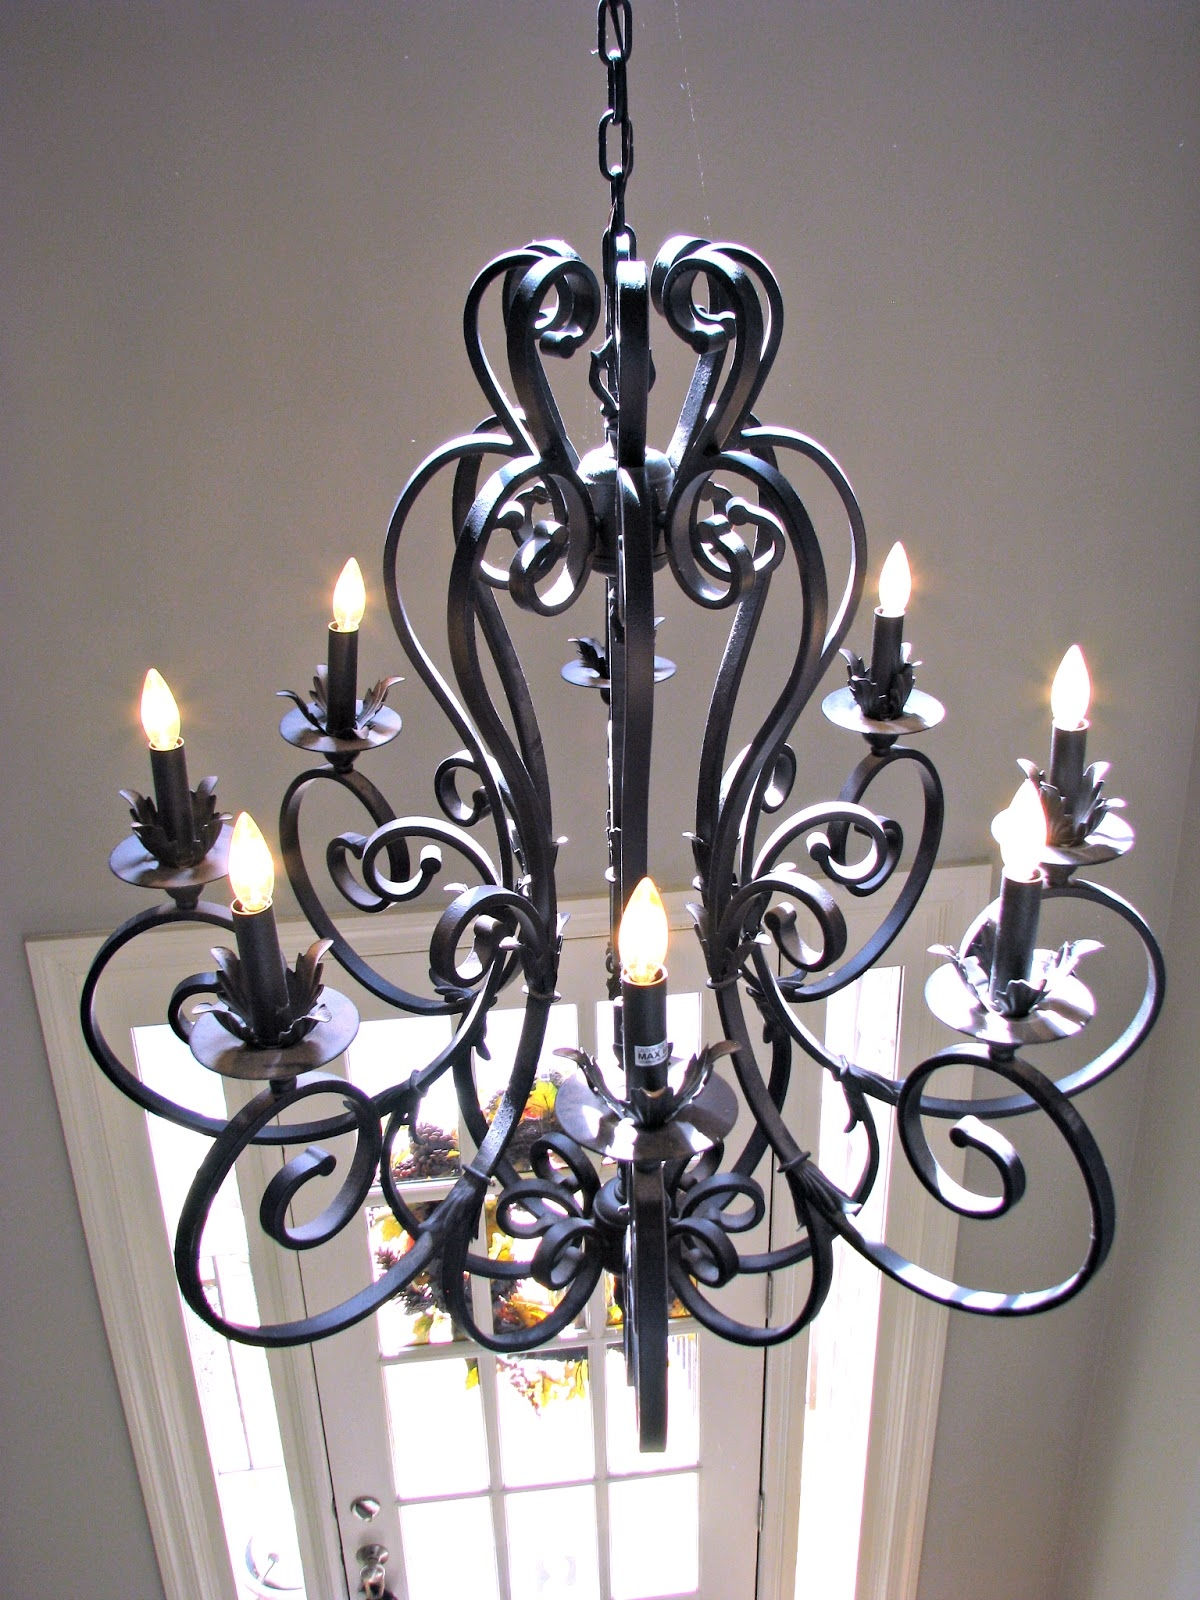 Wrought Iron Lighting Fixtures Roselawnlutheran With Regard To Modern Wrought Iron Chandeliers (Image 15 of 15)